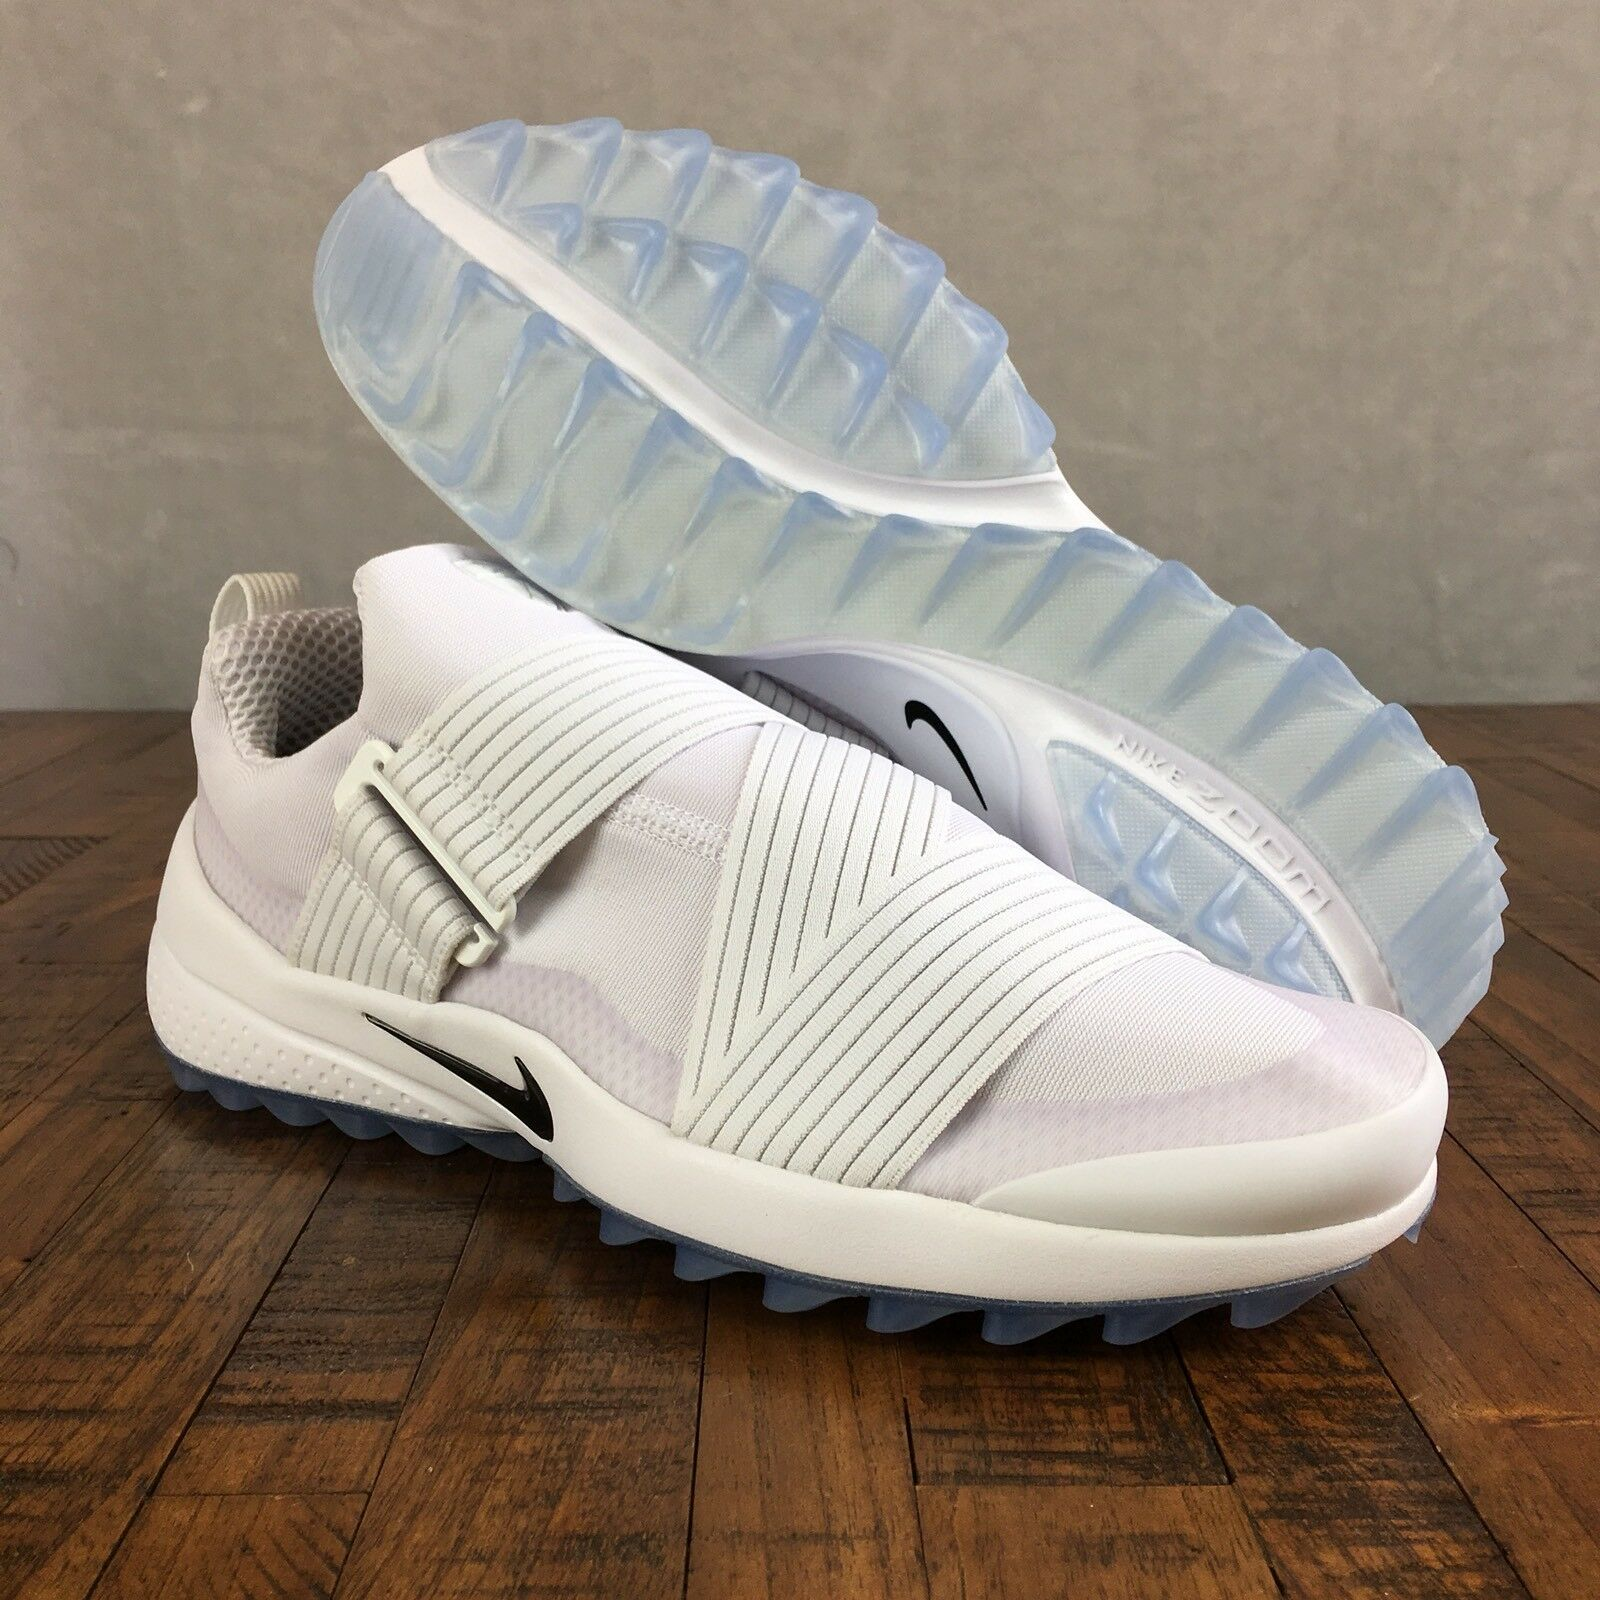 Nike Air Shoes Zoom Gimme Spikeless Golf Shoes Air White Oreo 849955-100 Mens Size 11 beaa6c